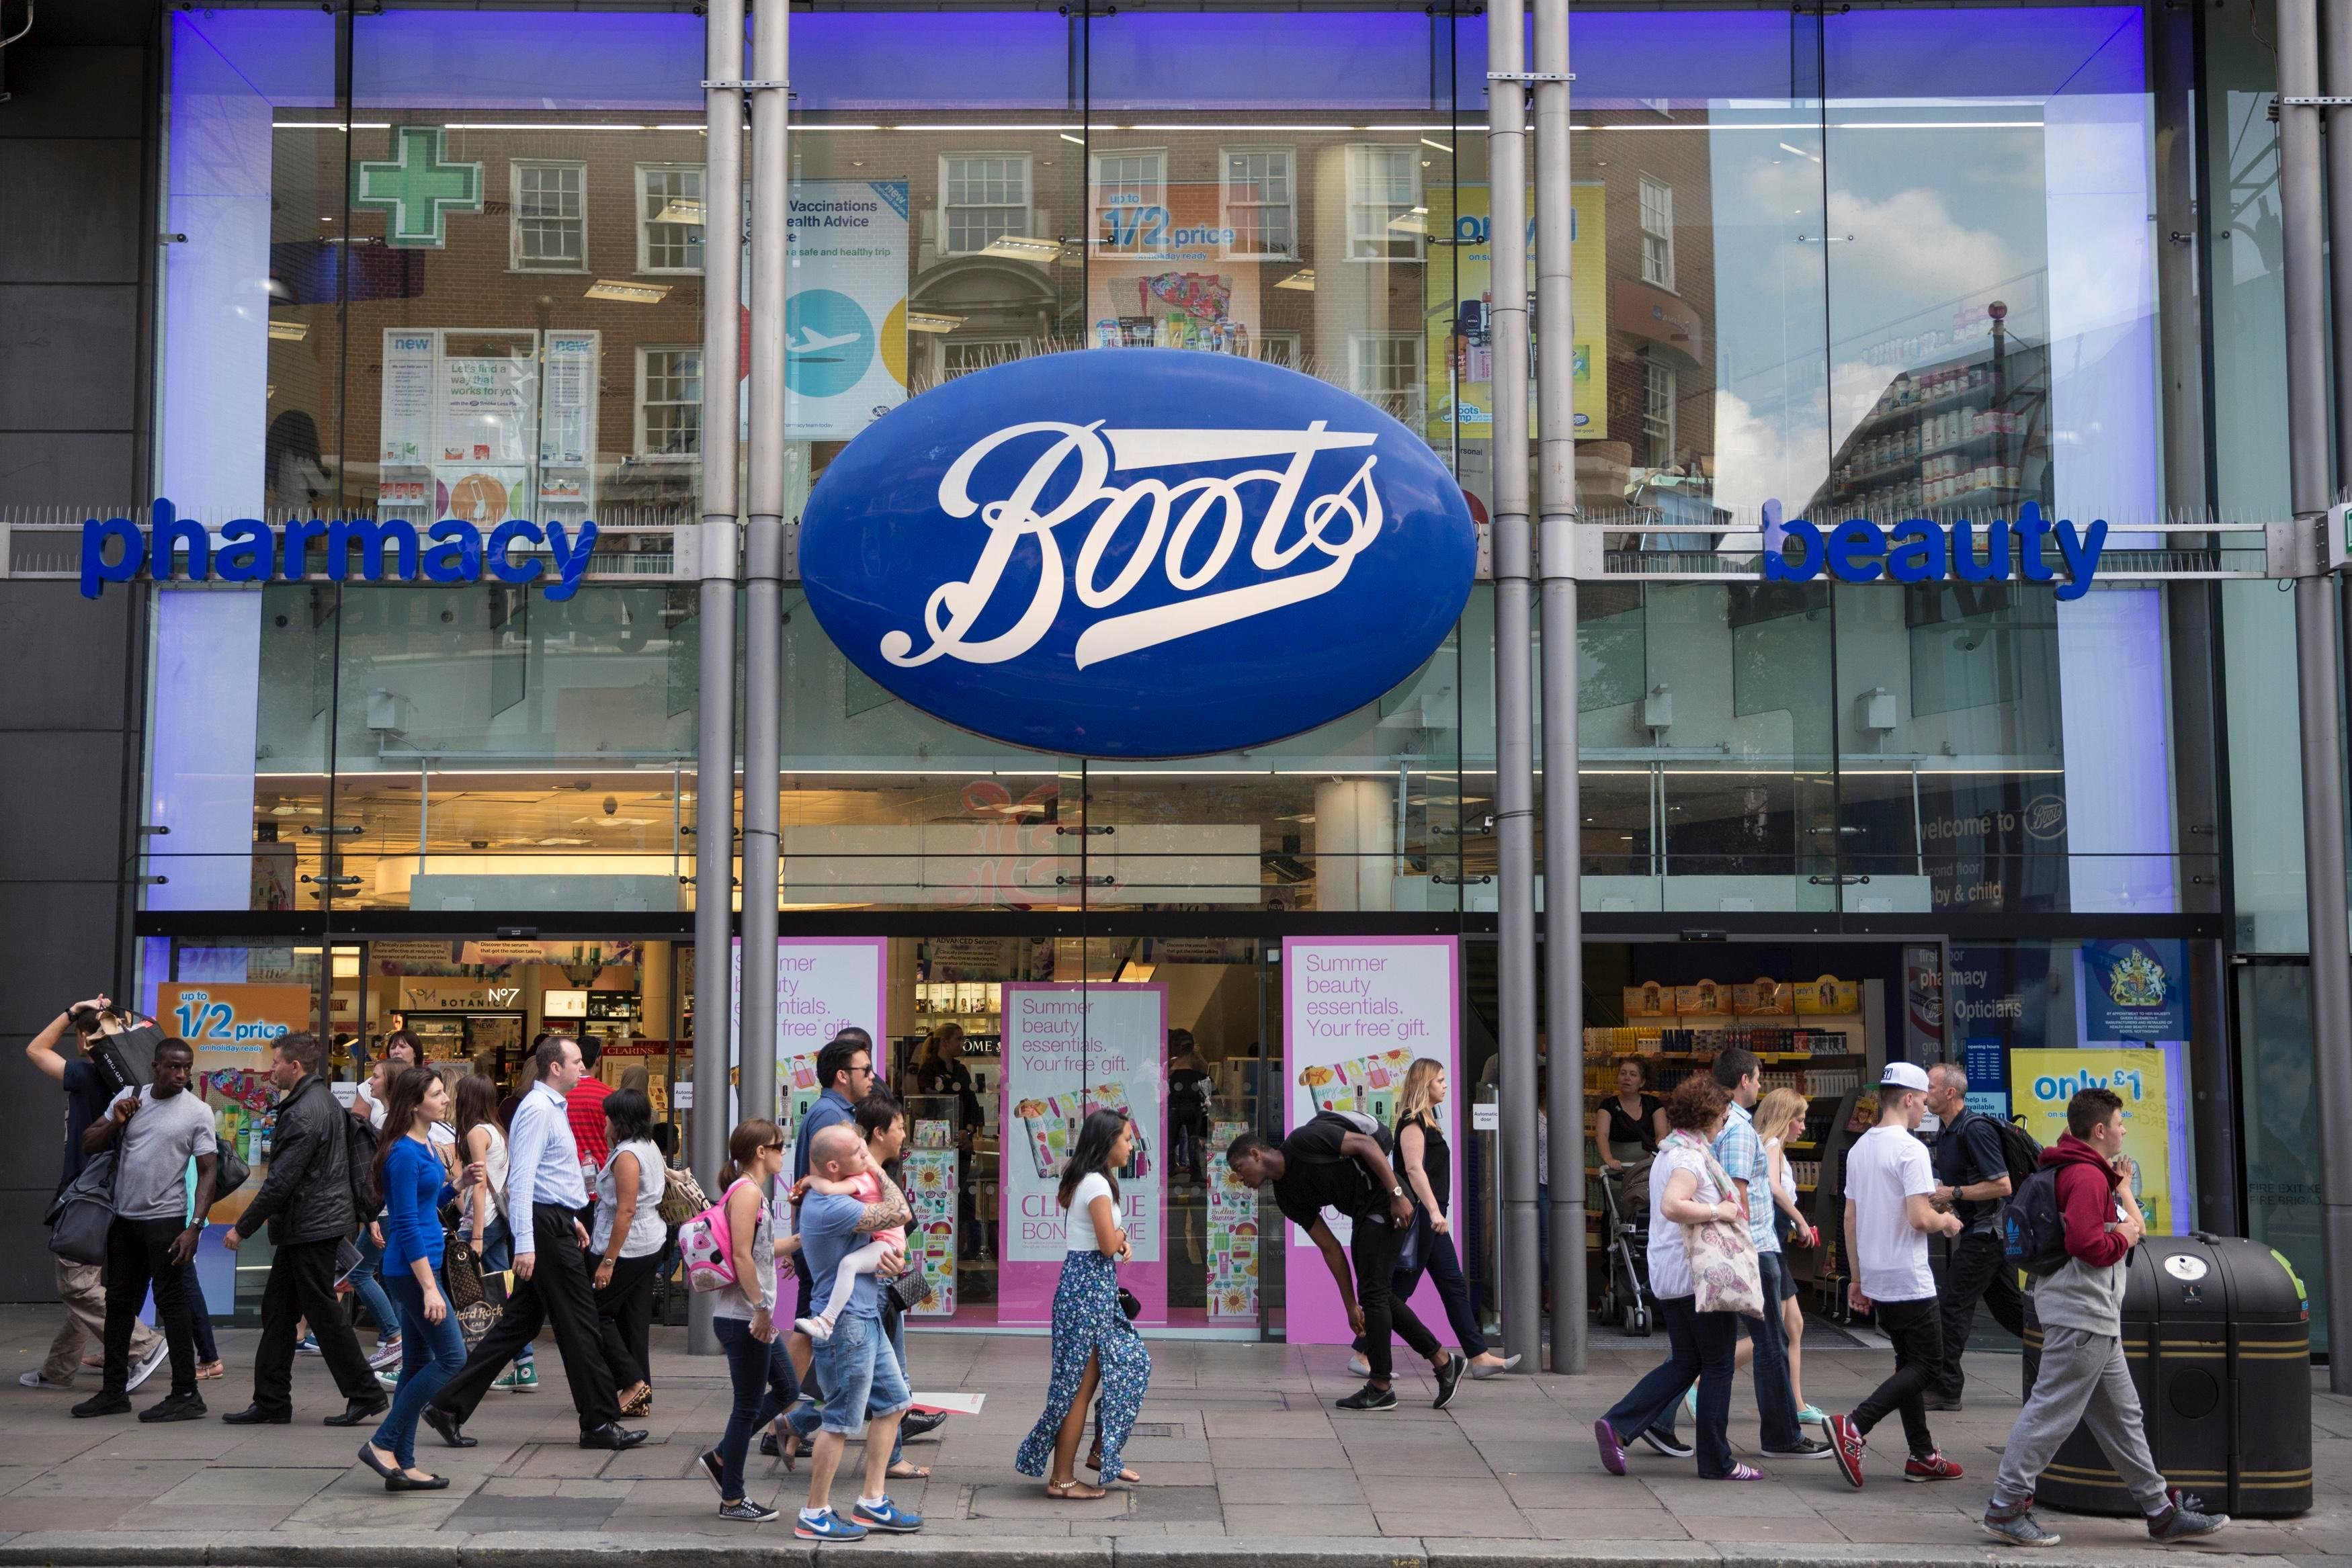 Boots' Website Outage Leaves Furious Shoppers Unable To Snap Up Its No 7 Advent Calendar 2019 Boots